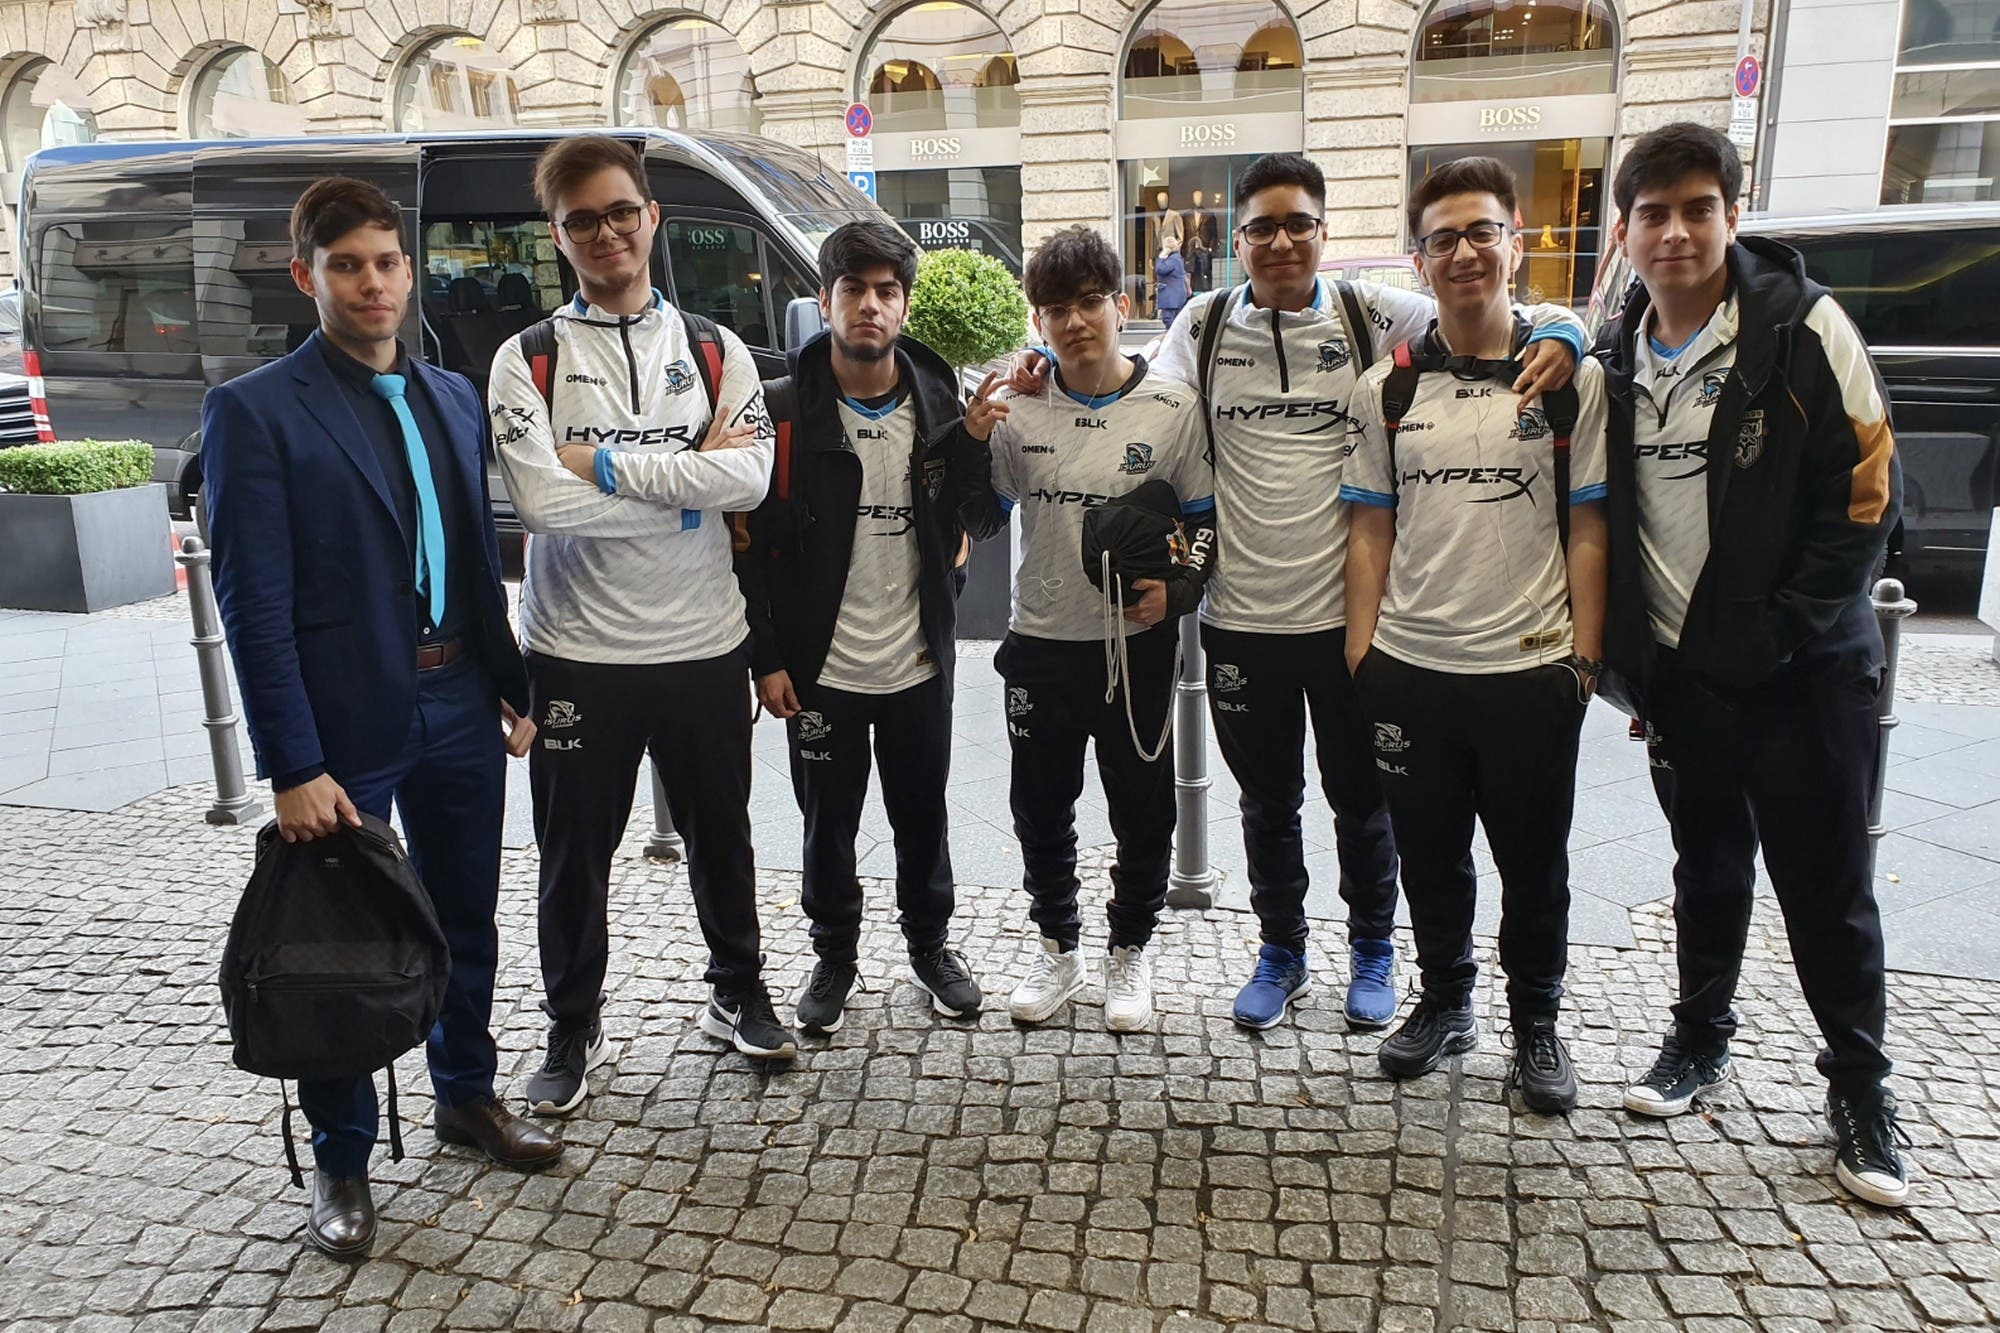 League of Legends: Isurus debutó en el mundial con un triunfo y una derrota y sigue con chances